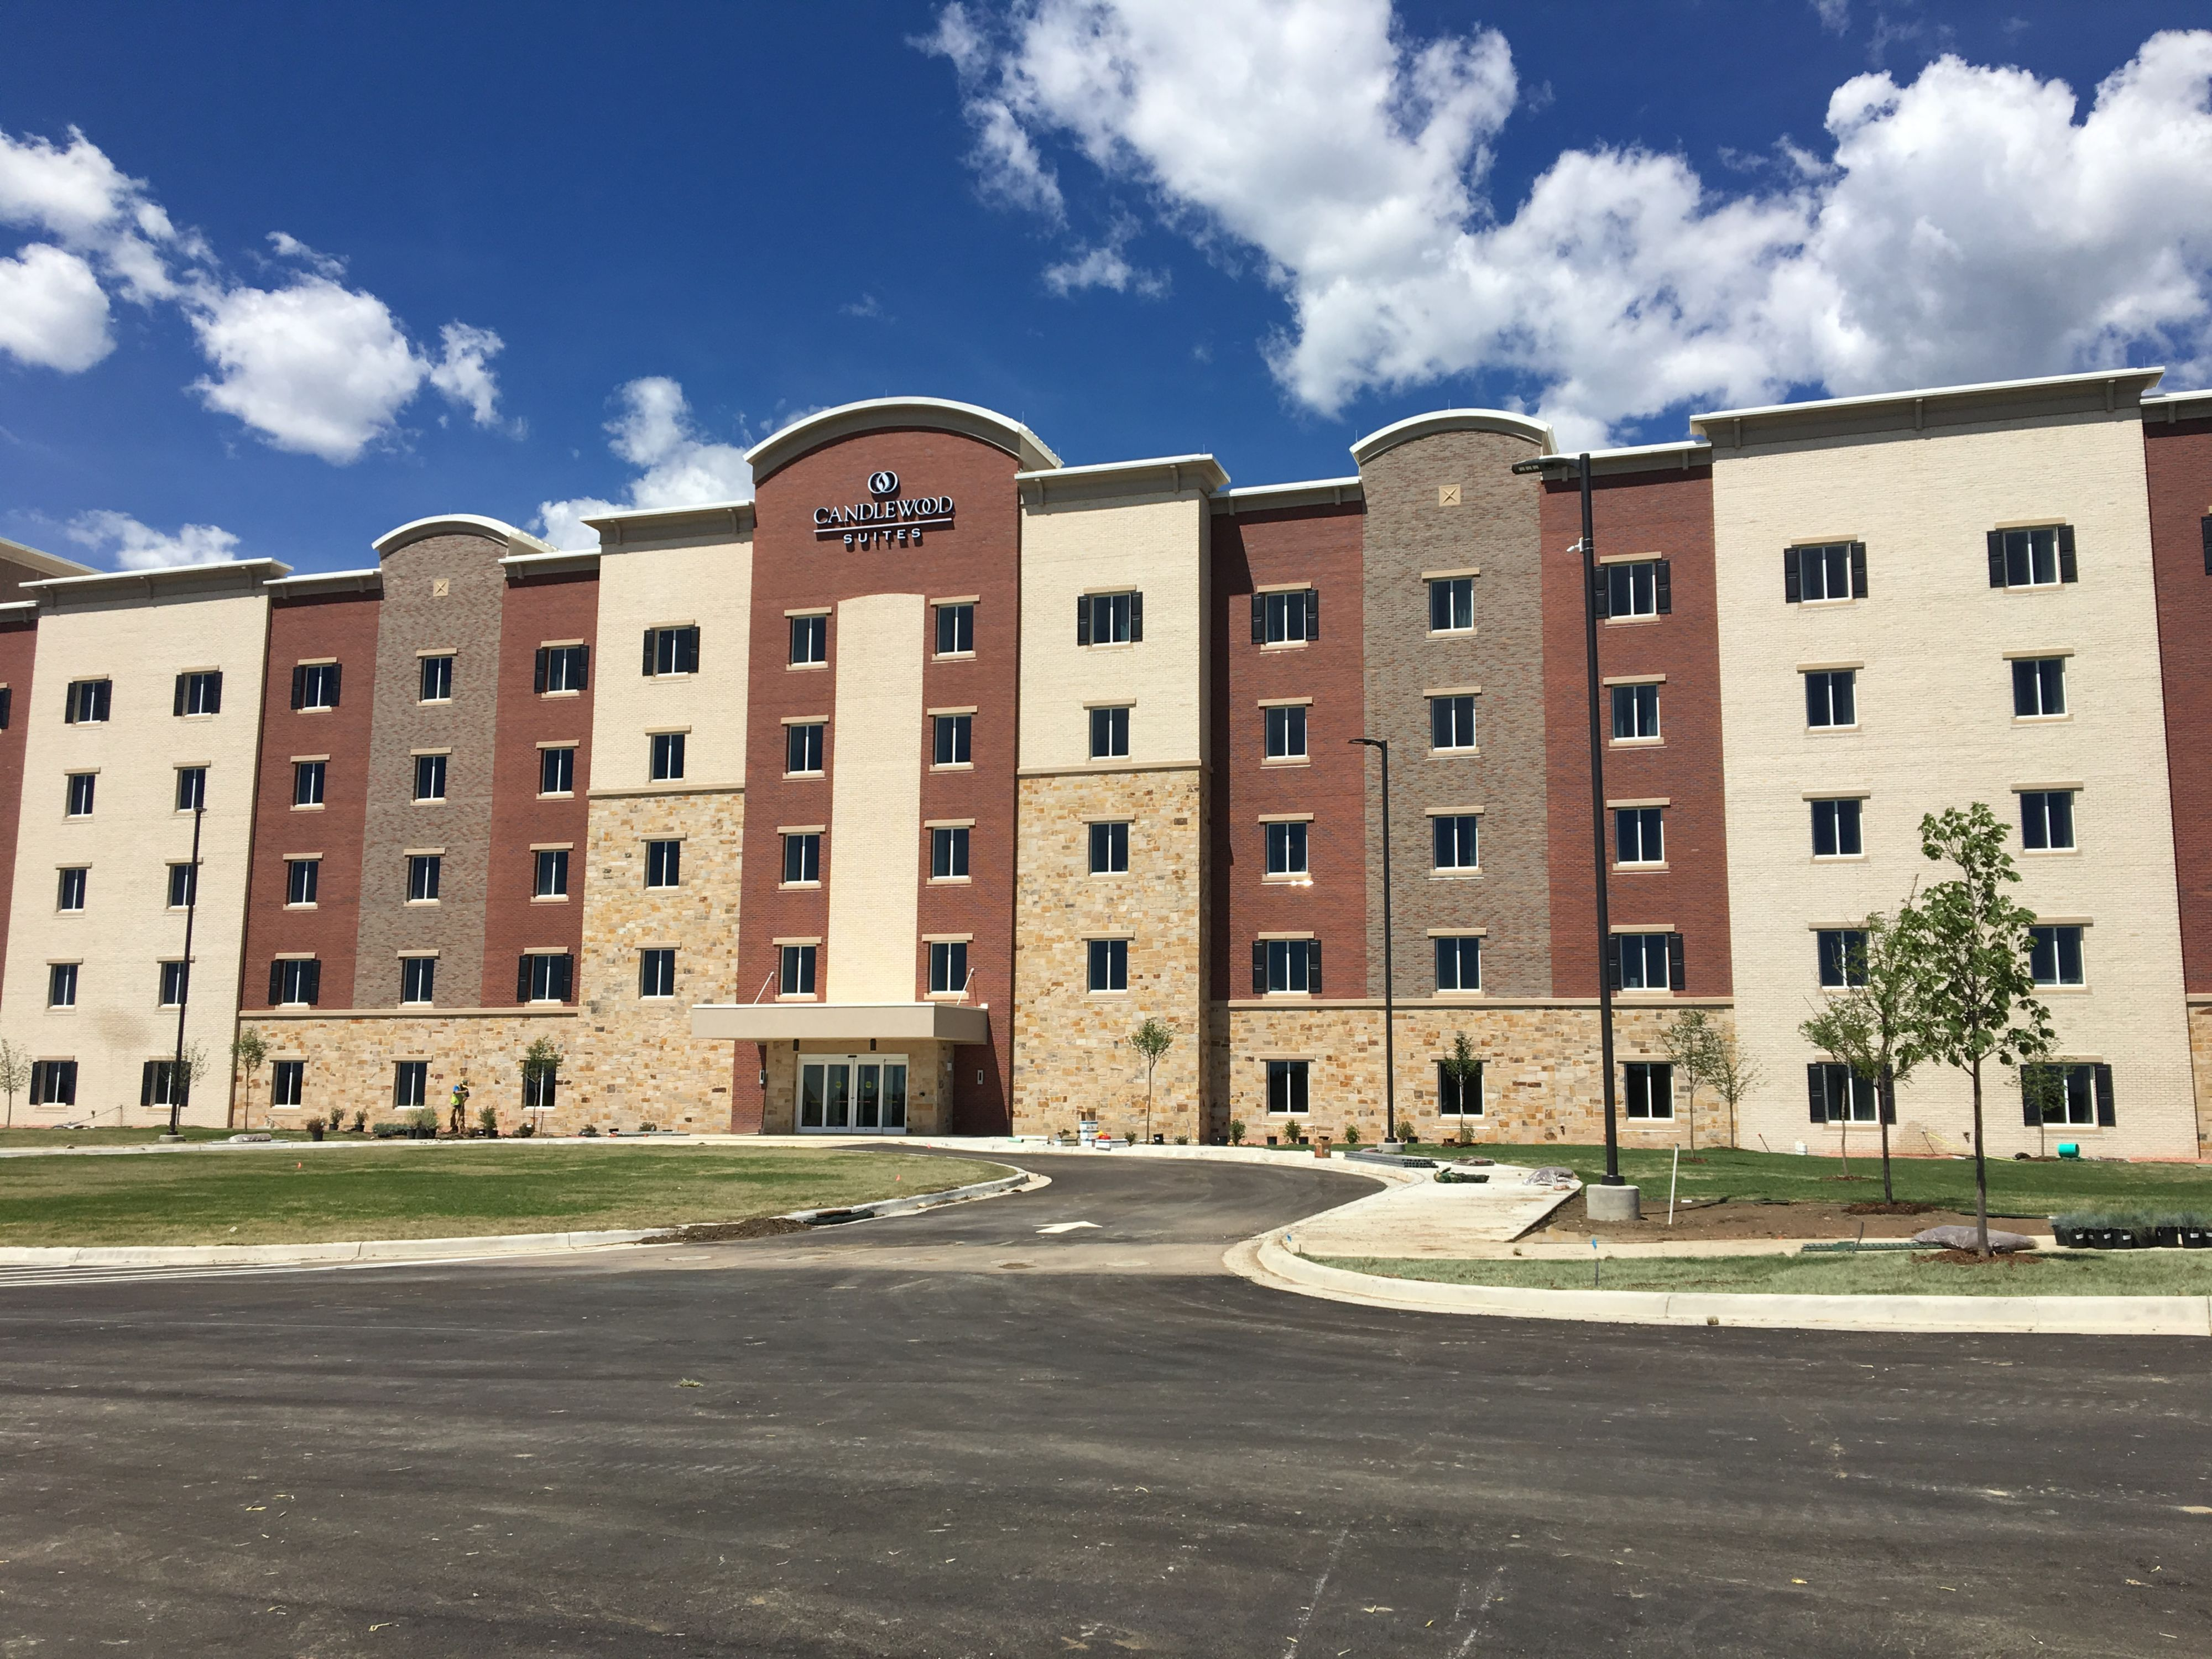 Candlewood Suites on Fort Carson, CO